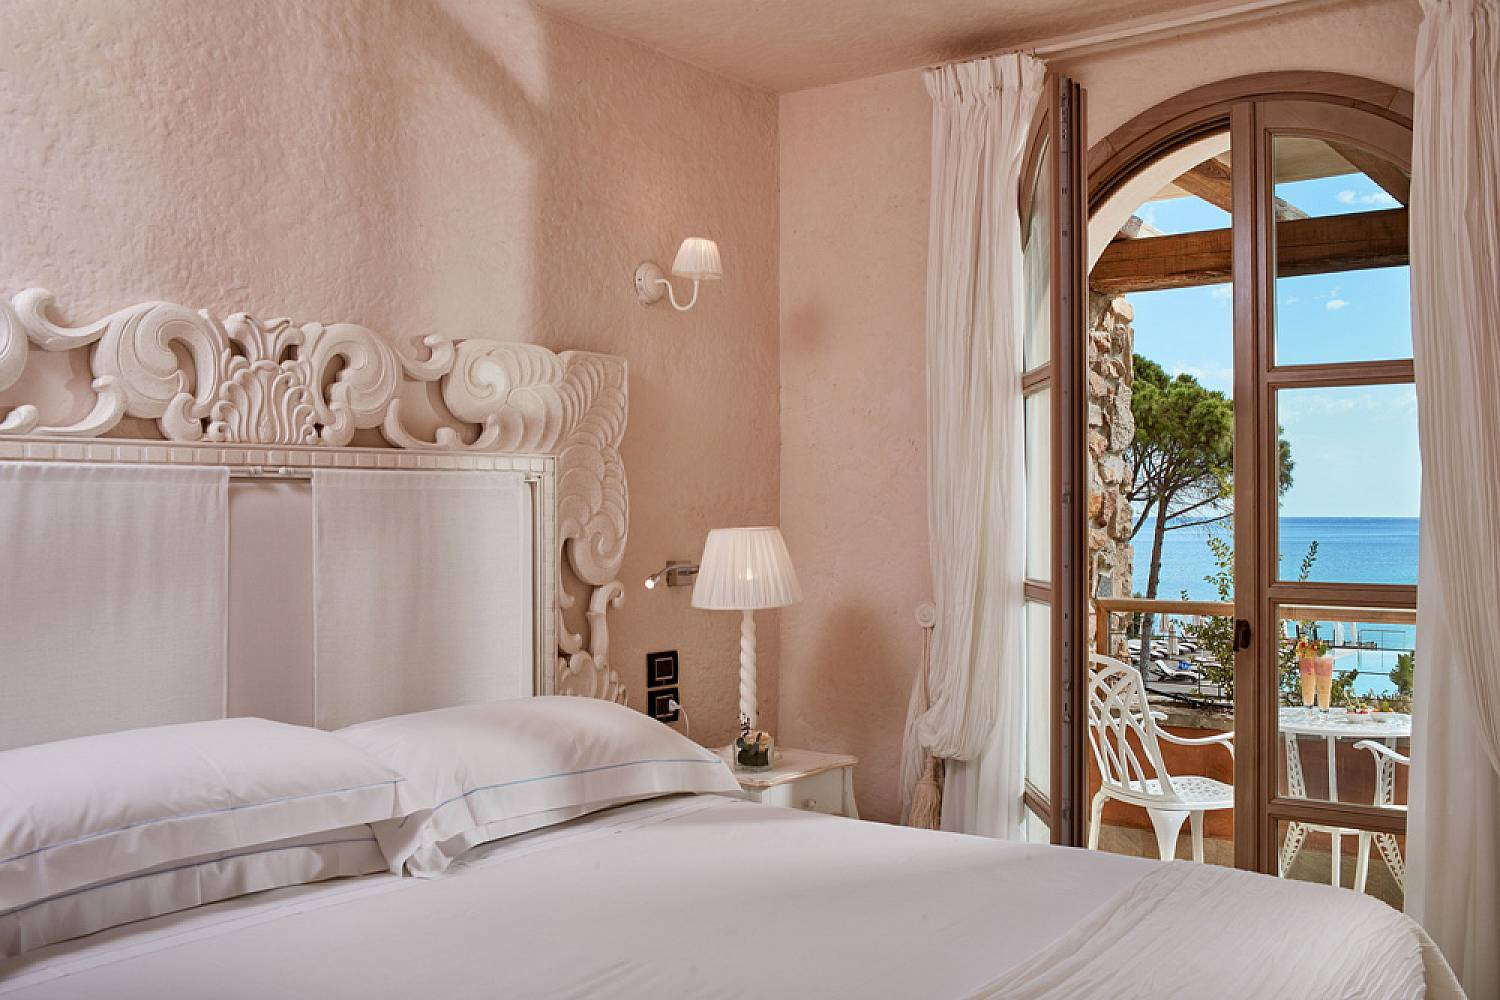 sardinia chat rooms After entering the chat you will be presented with a list of chat rooms to select from, similar to what is displayed in the above image name of all the public & your private chat rooms will be displayed, alongside the number of people in each room.